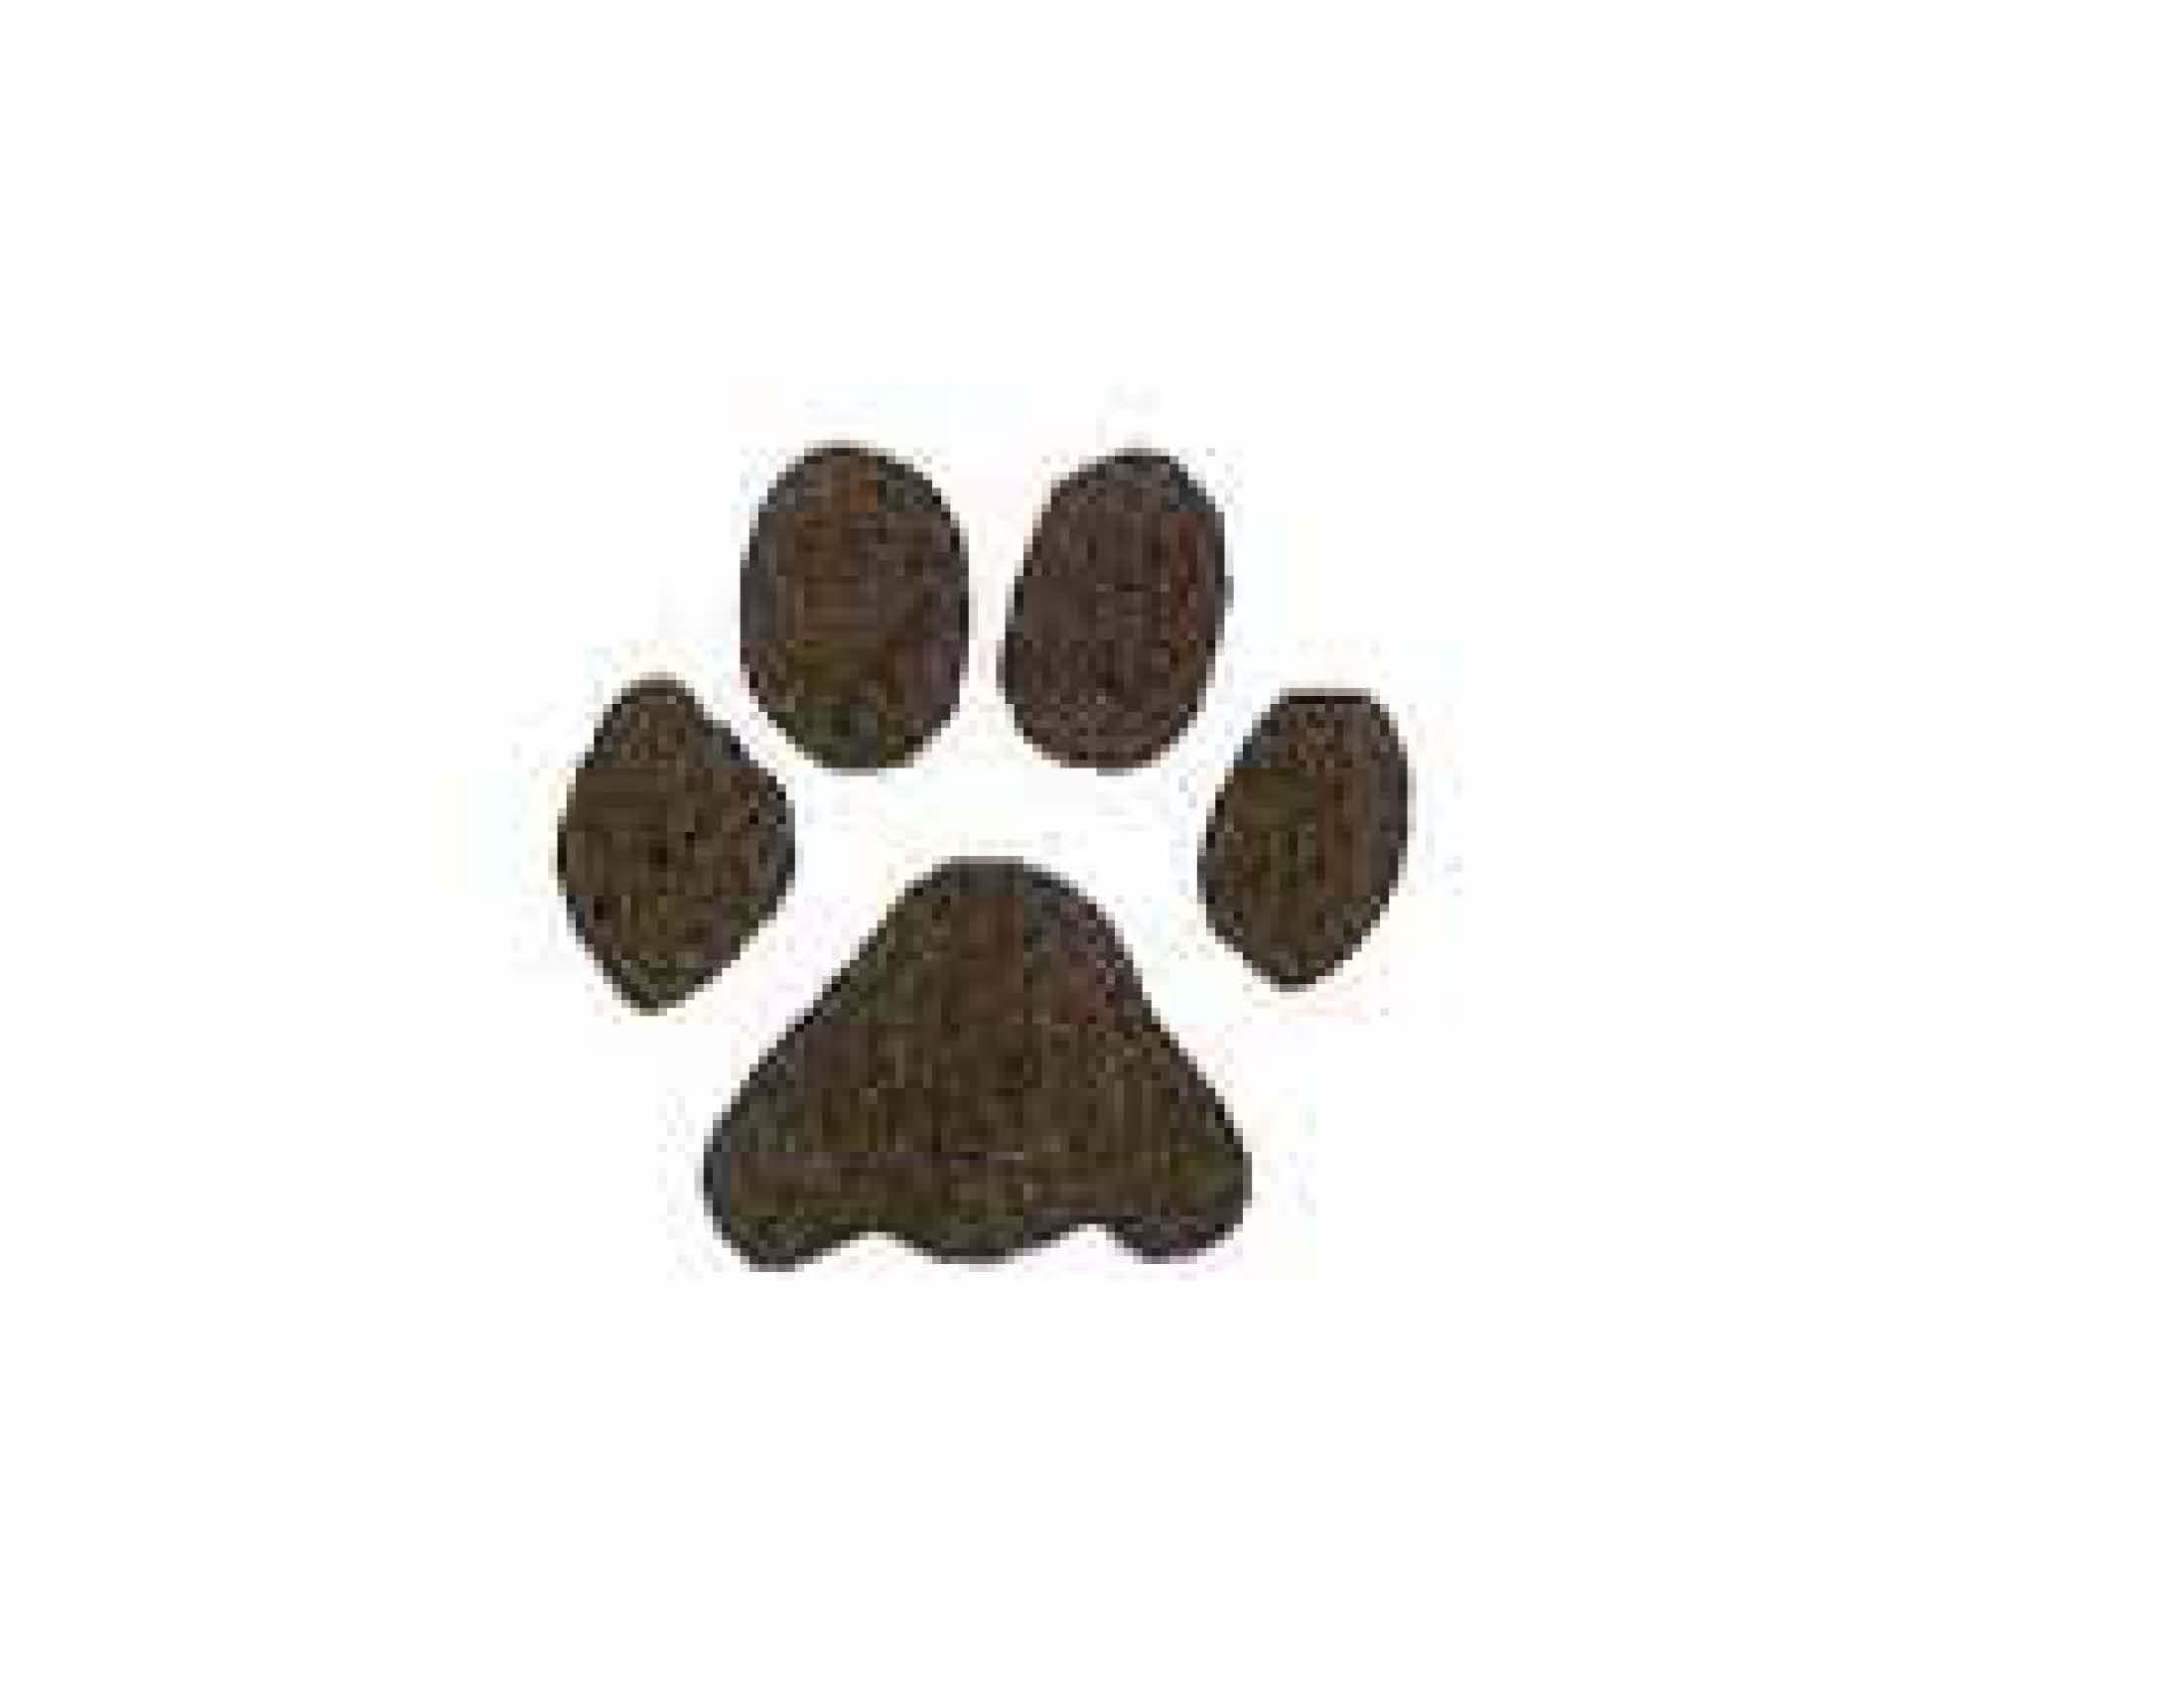 Dog paw print free download clip art on 5